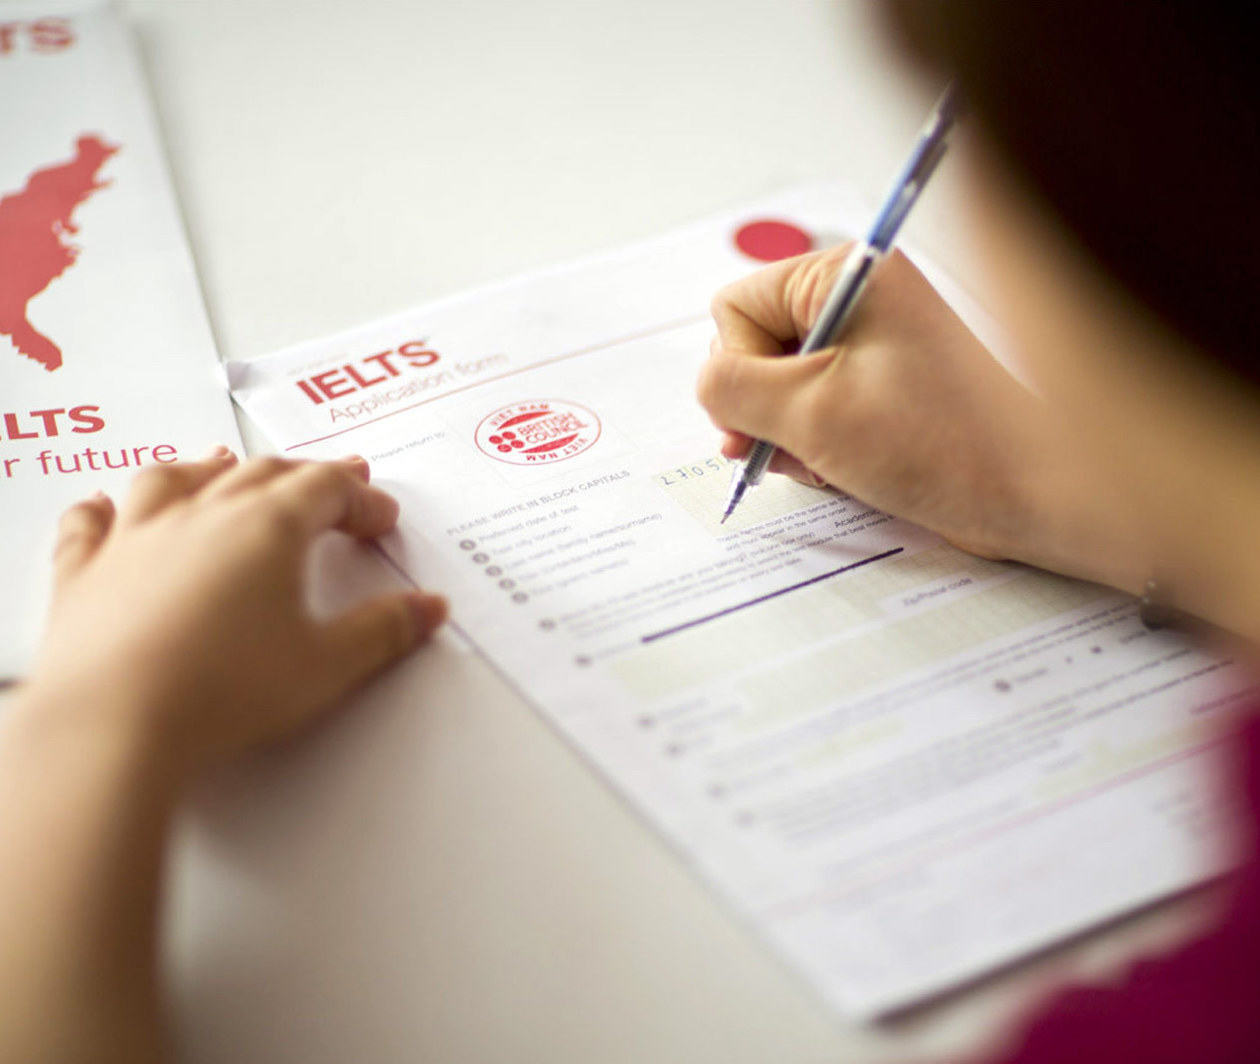 Pointers for success in IELTS test